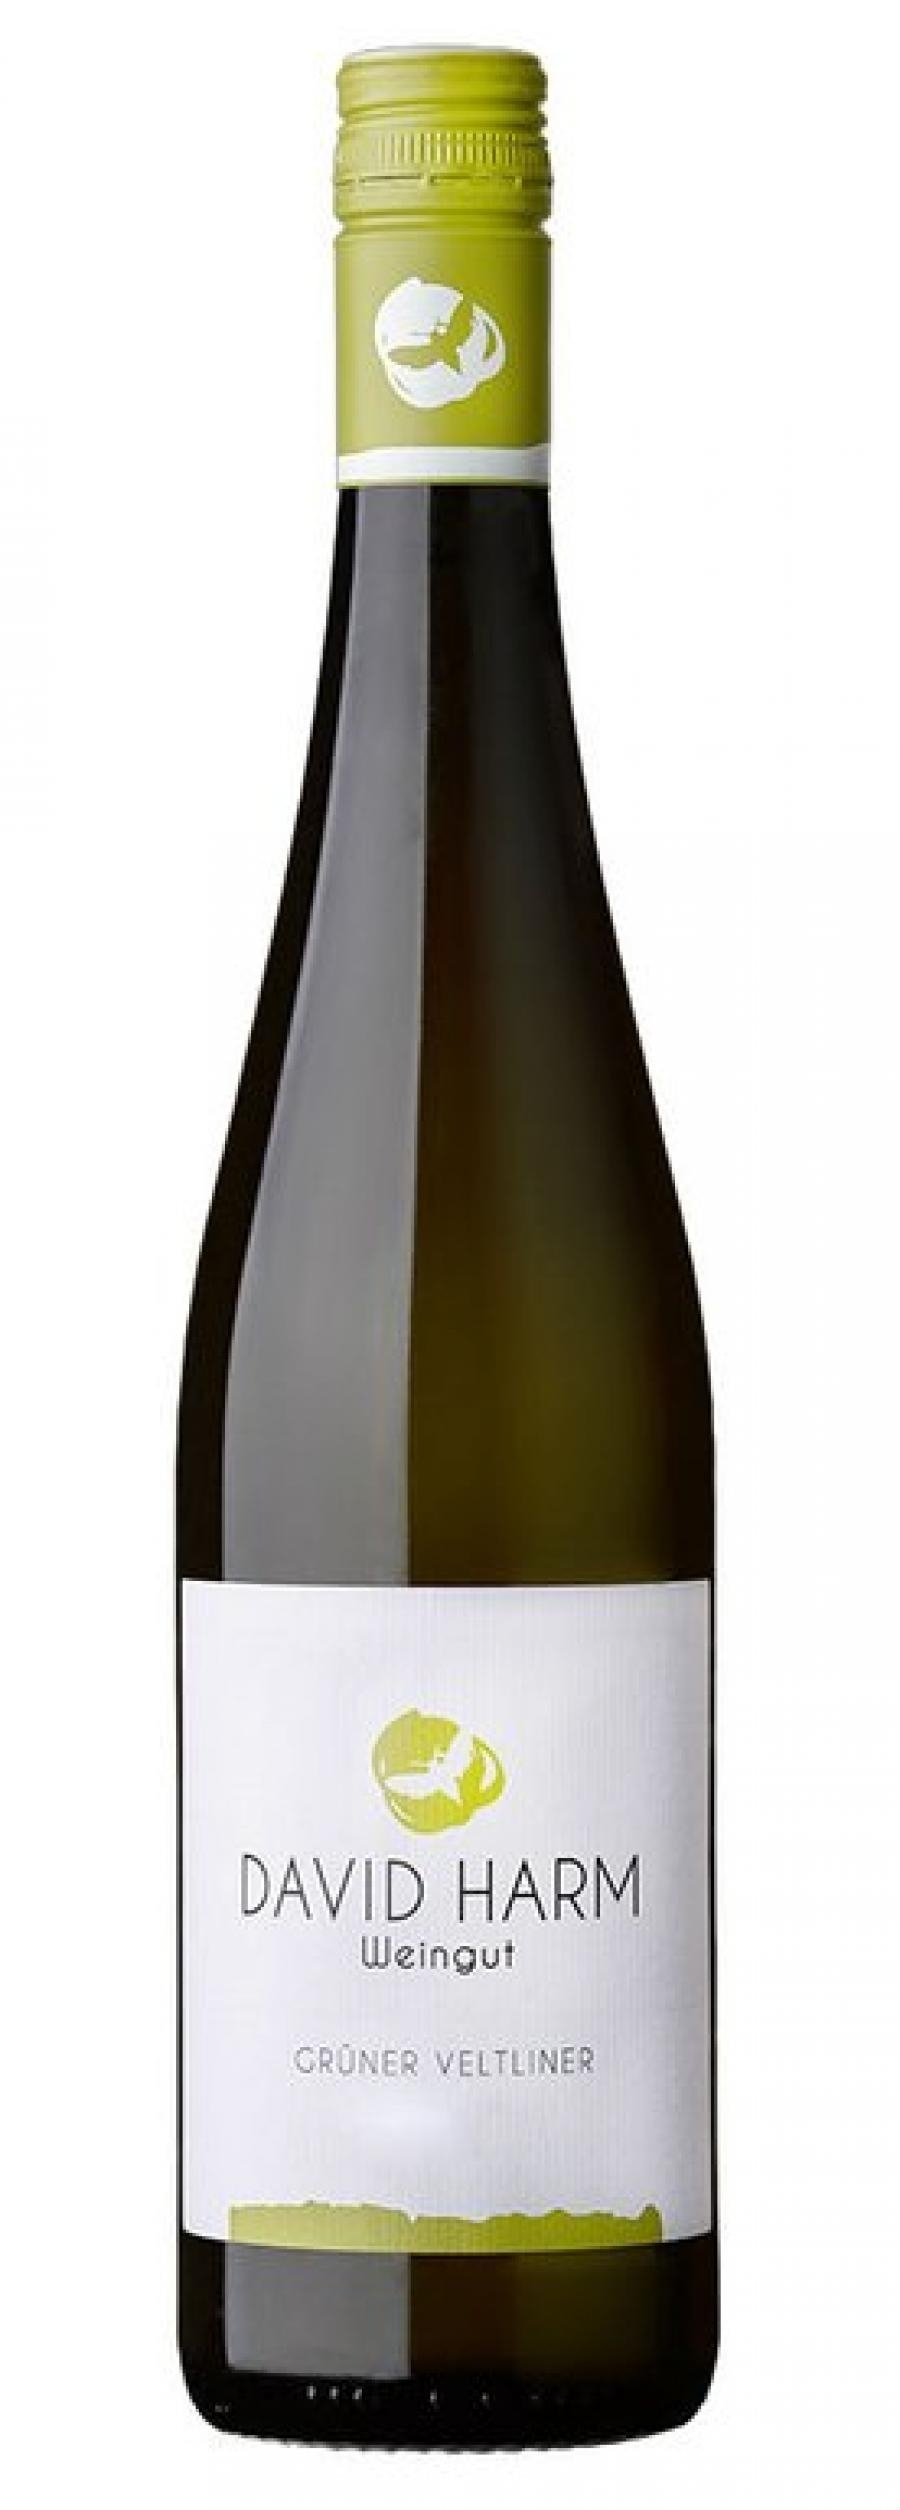 David Harm Gruner Veltliner 2017 0.75l